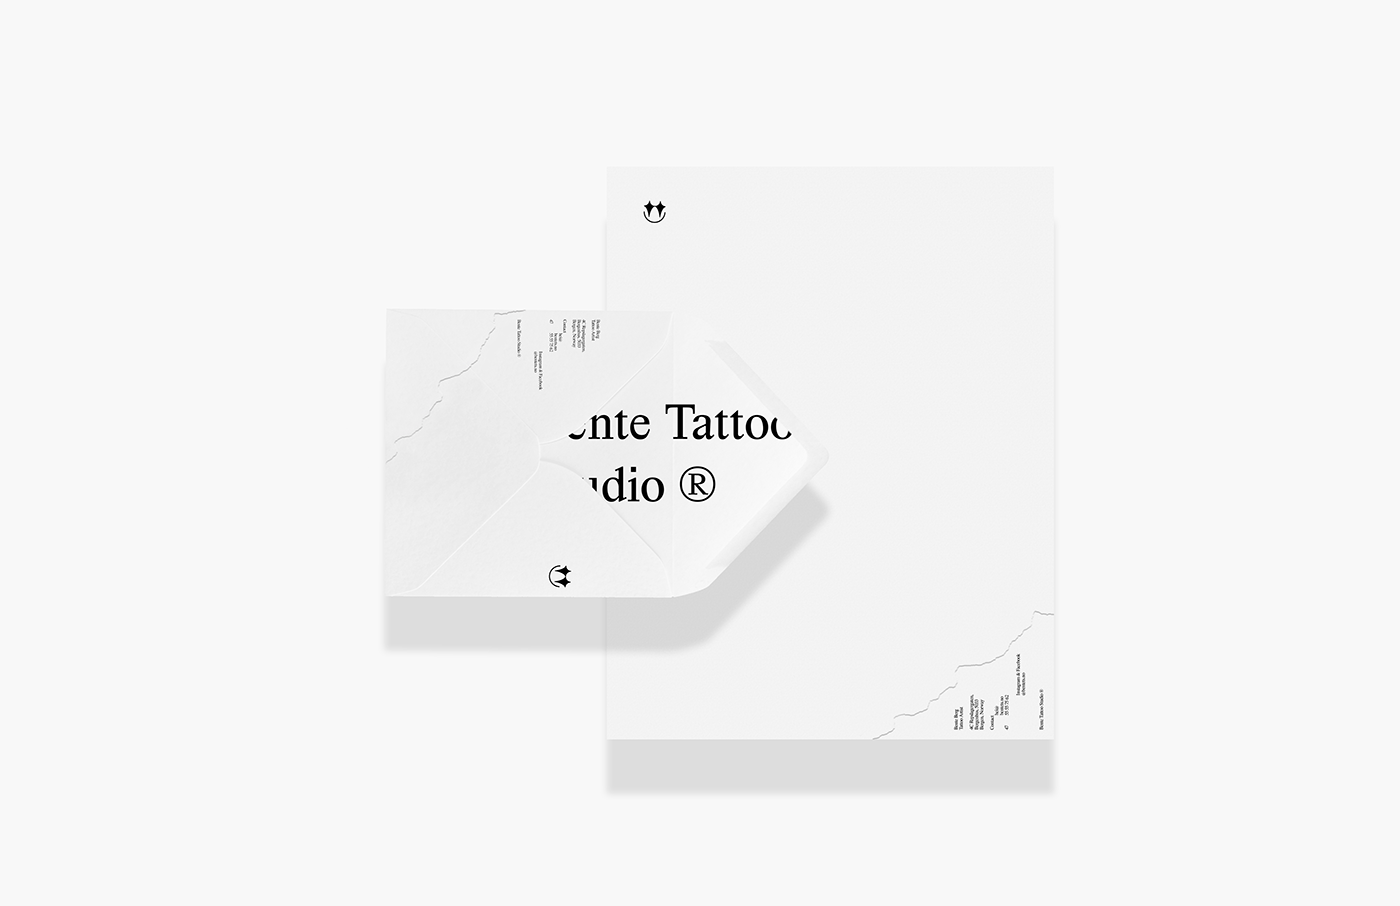 Brand Identity for Bente Tattoo Studio in Norway